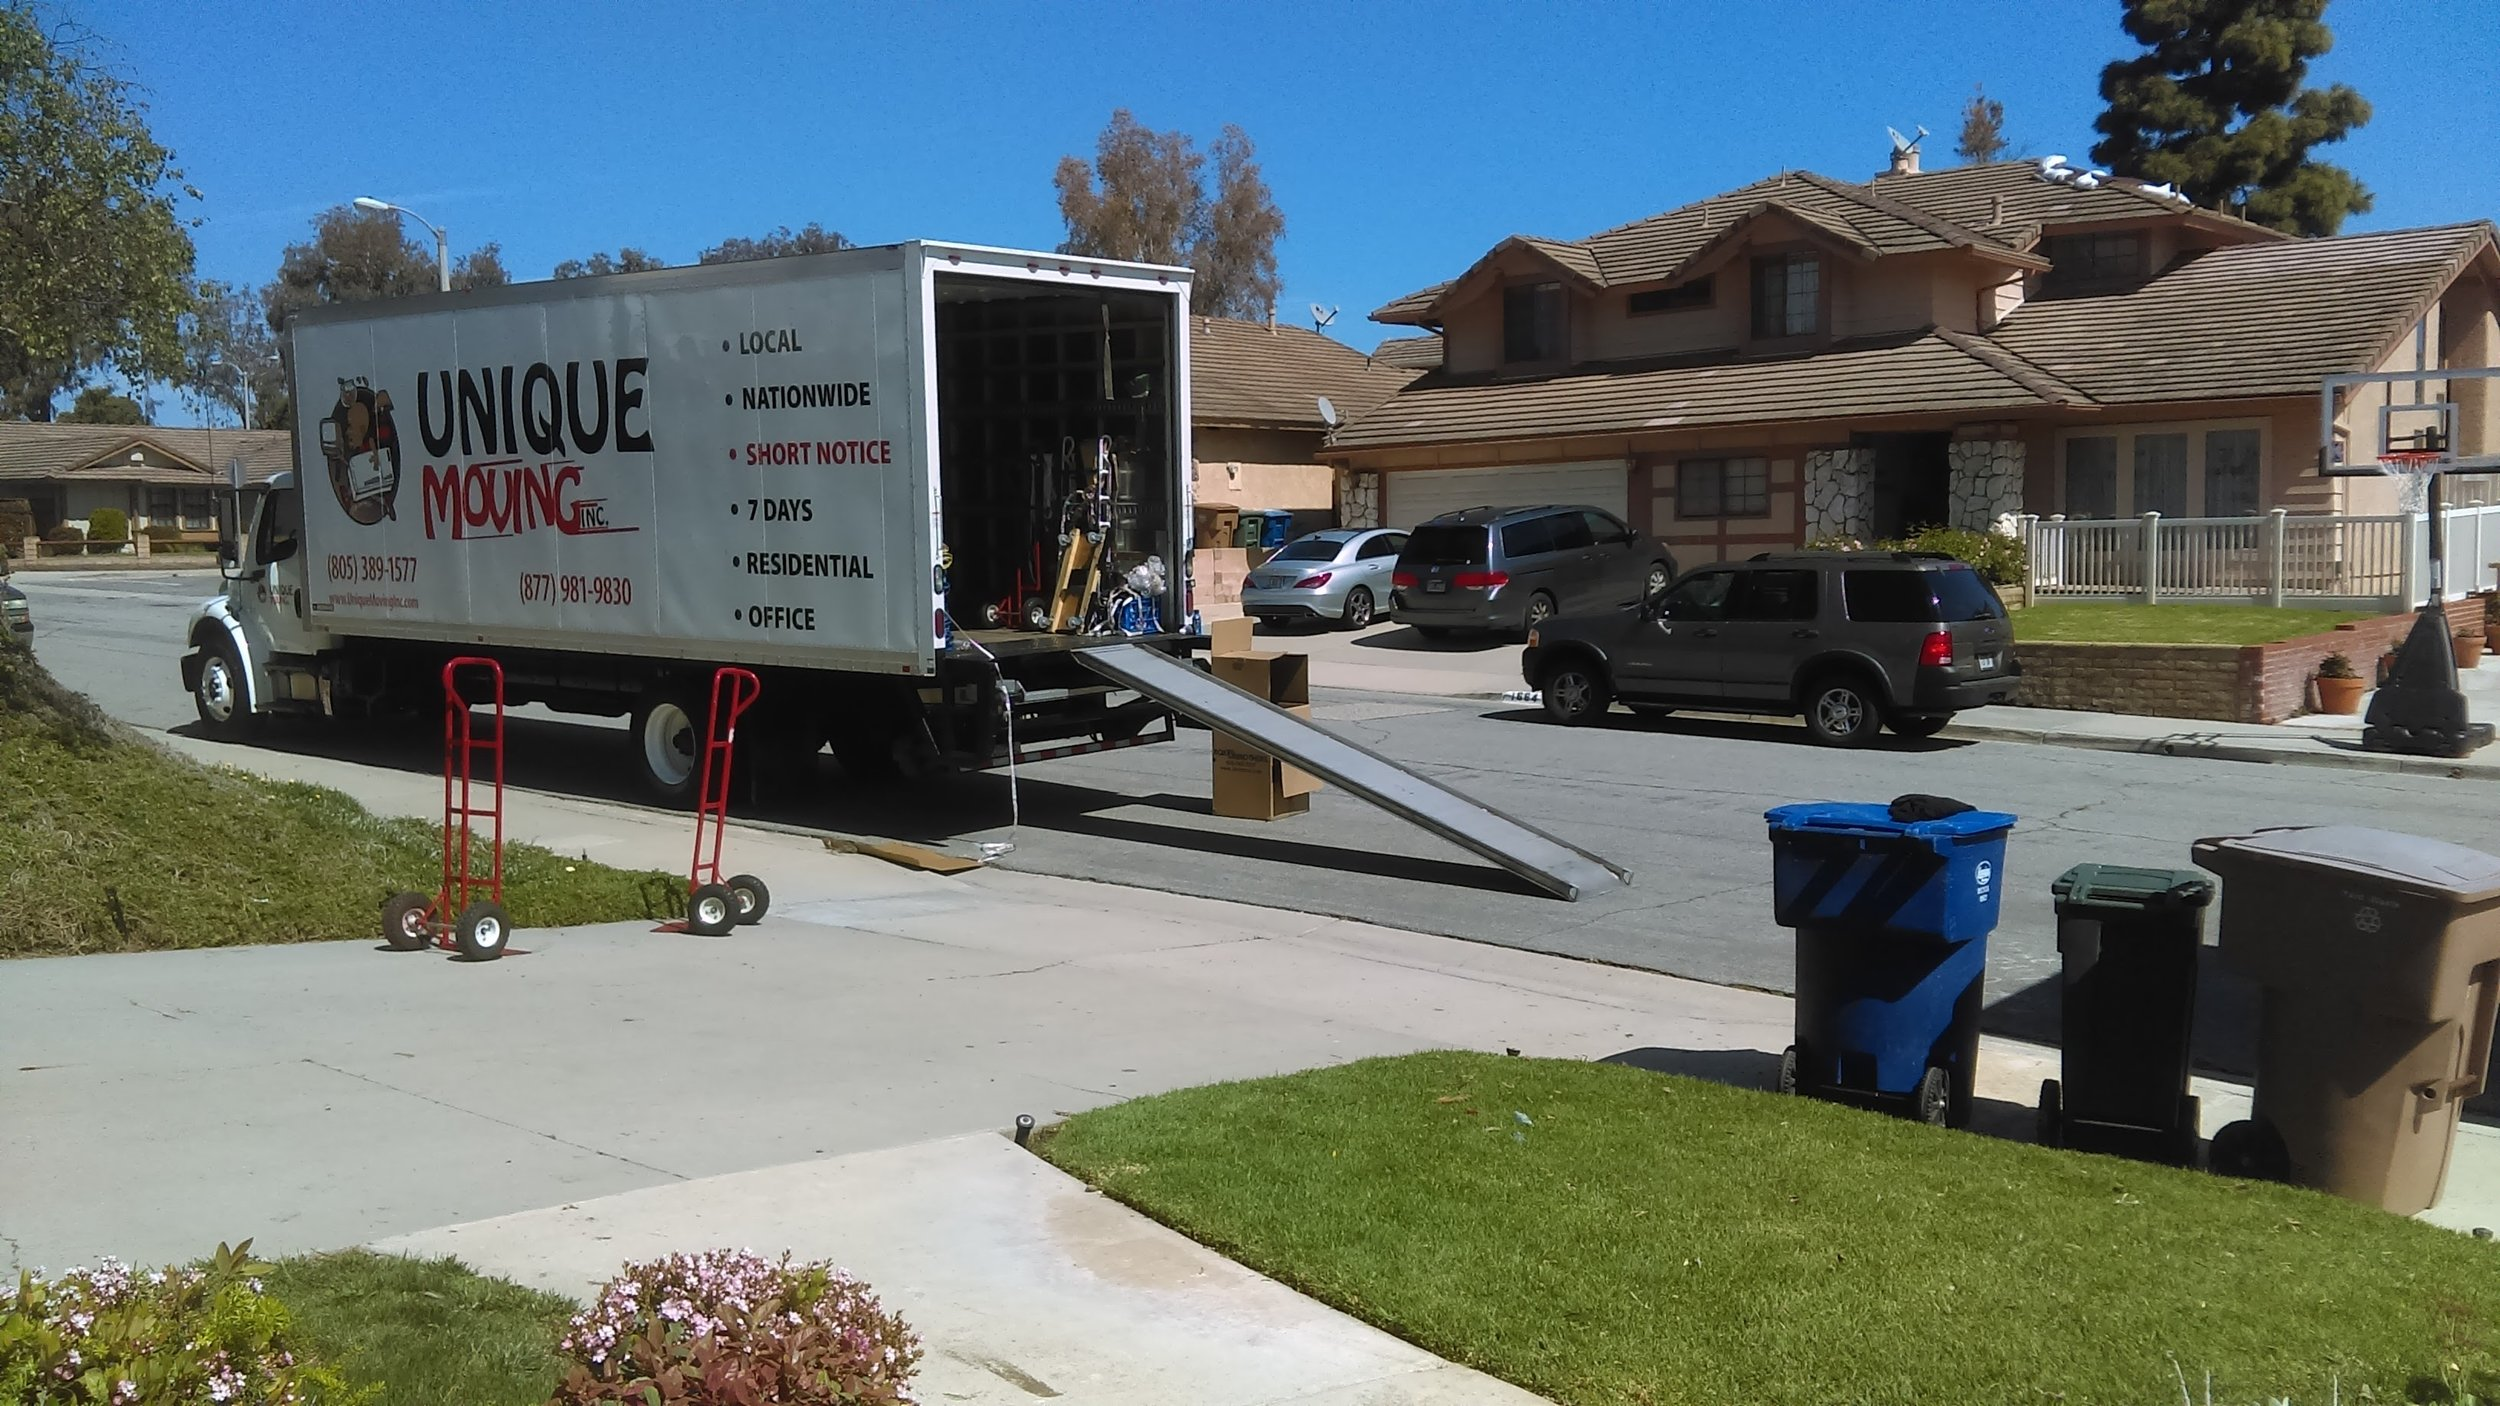 Unique Moving Inc    Best Movers near me in Ventura Co